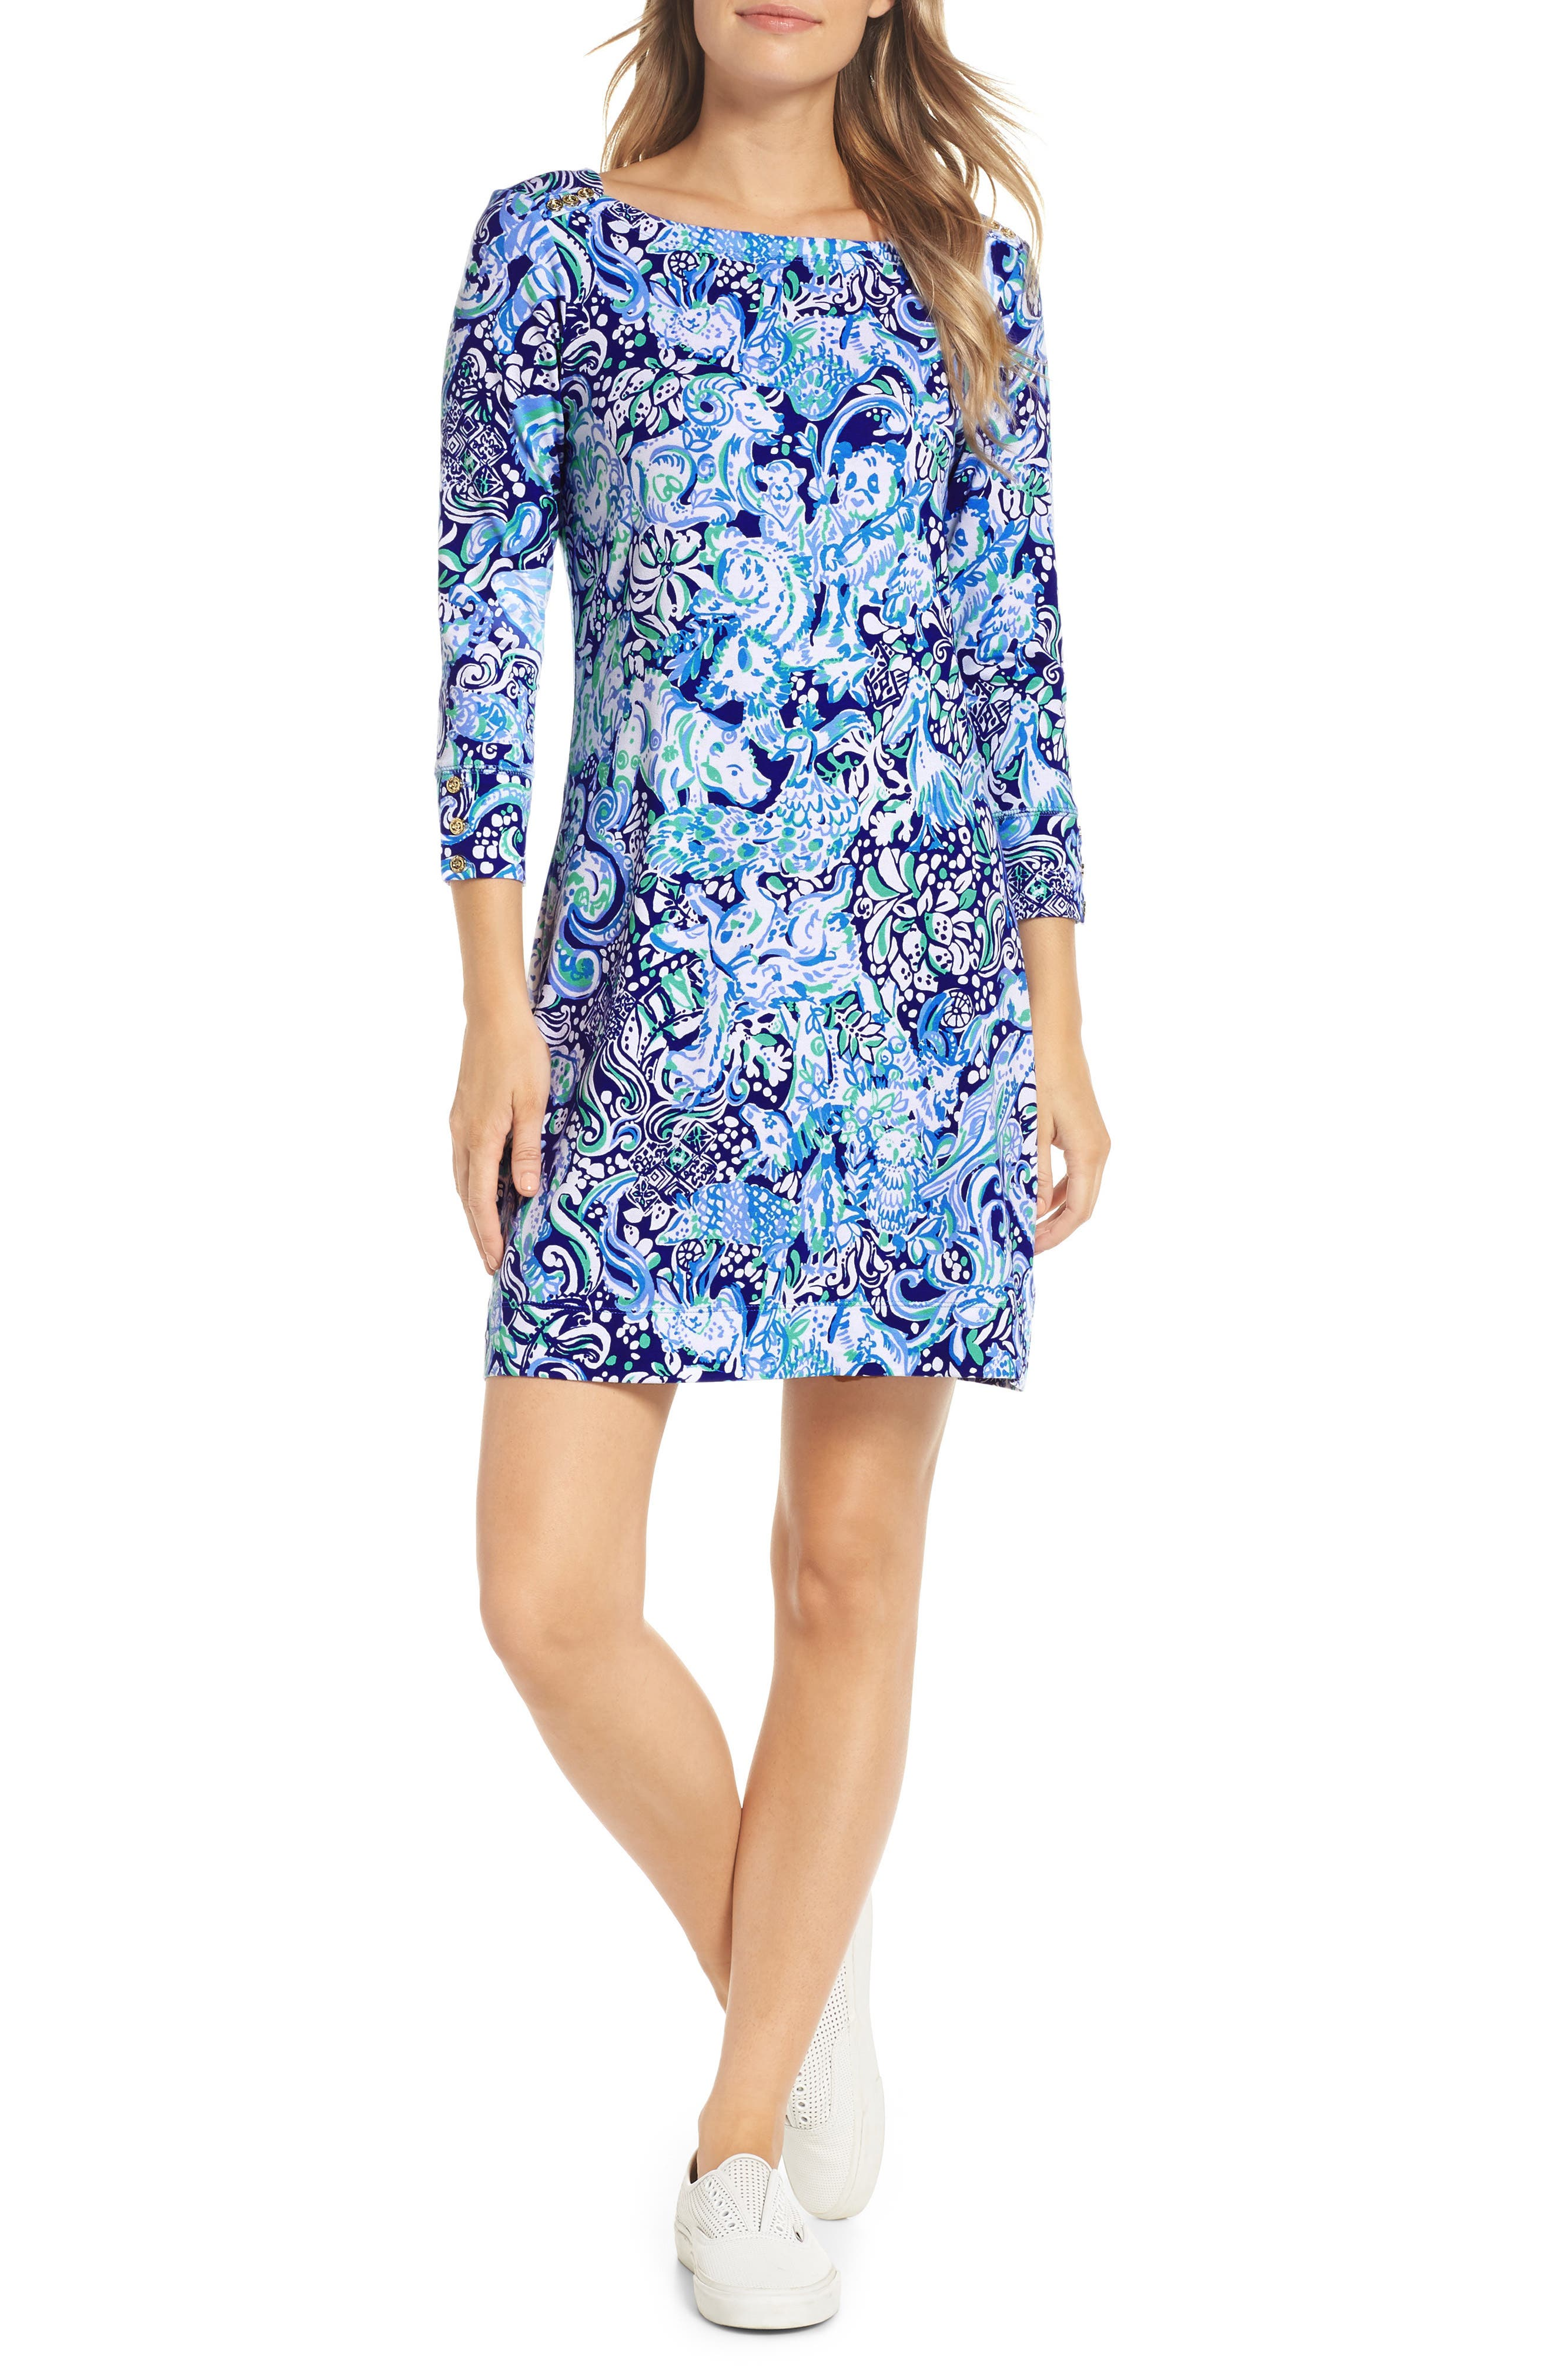 Lilly Pulitzer Sophie Upf 50+ Boat Neck Dress, Purple